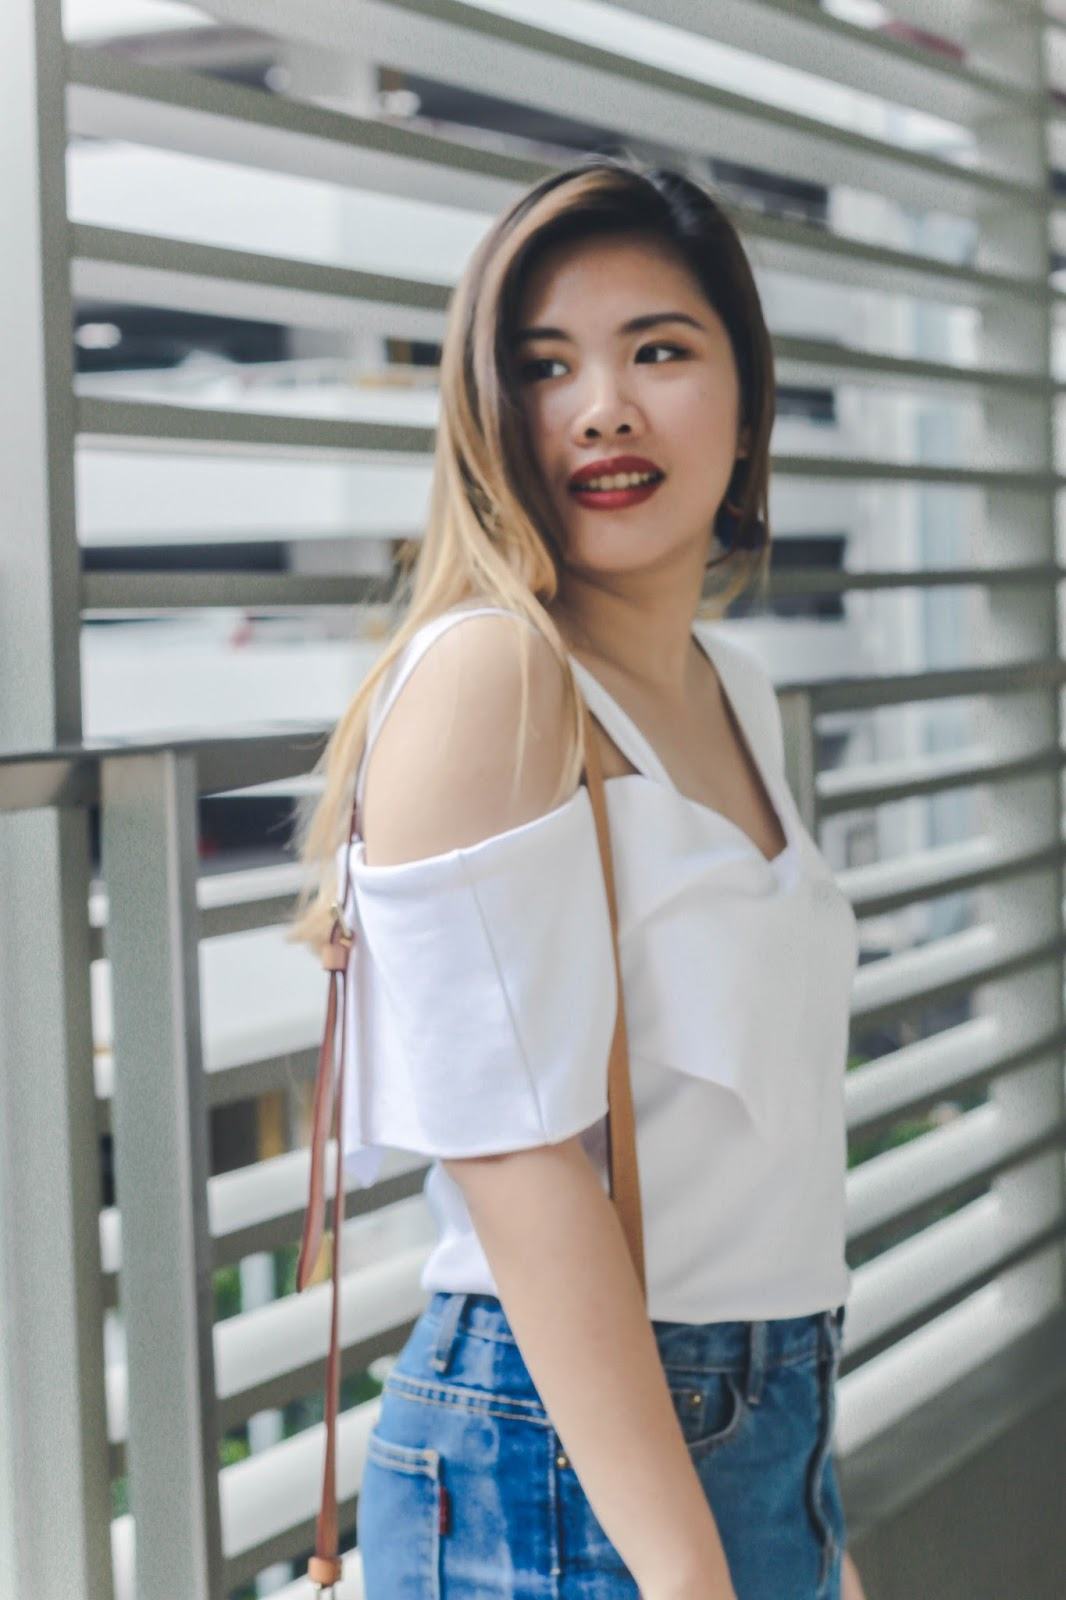 singapore blogger blue denim jeans how to style what to wear look book street style photographer fashion